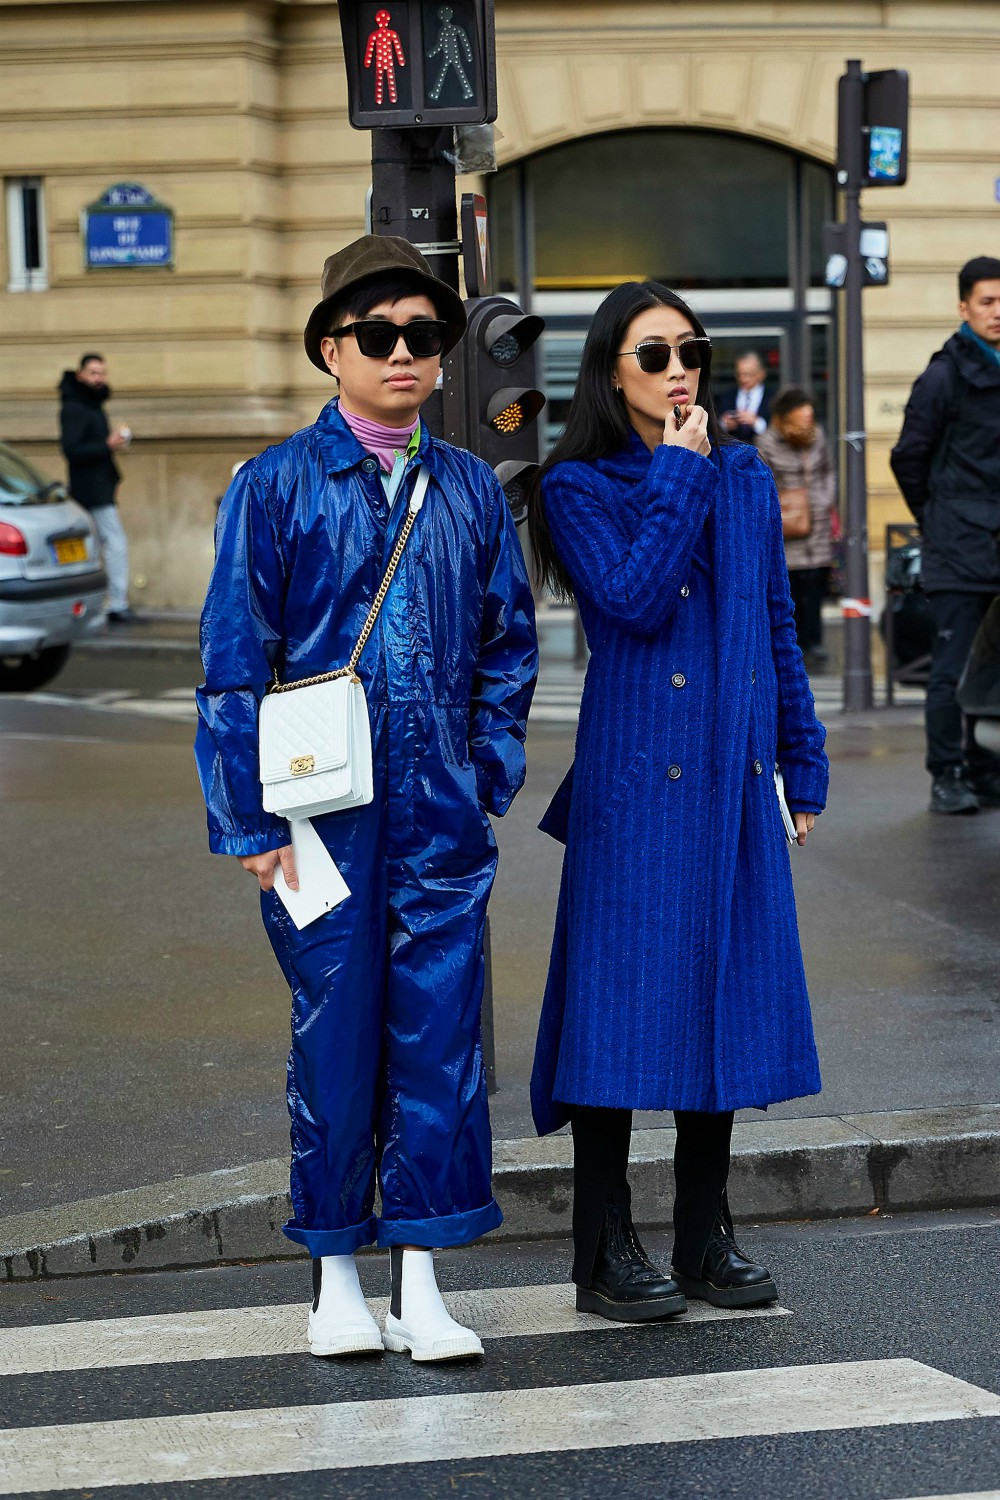 This dynamic Princess Blue duo stands out on the streets during Paris Fashion Week.